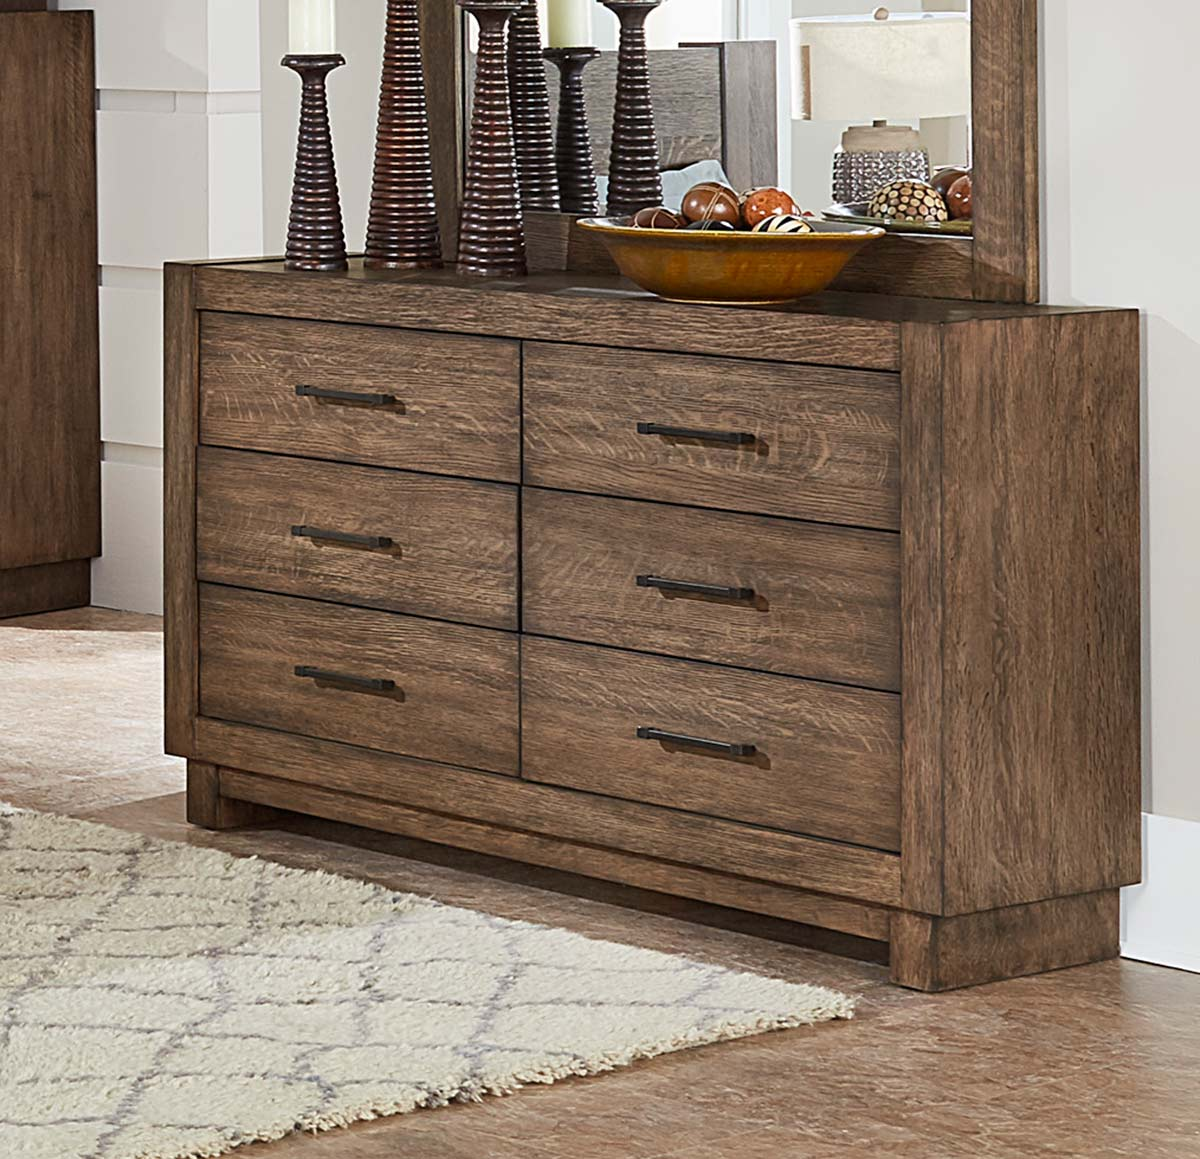 Homelegance Korlan Dresser - Brown Oak